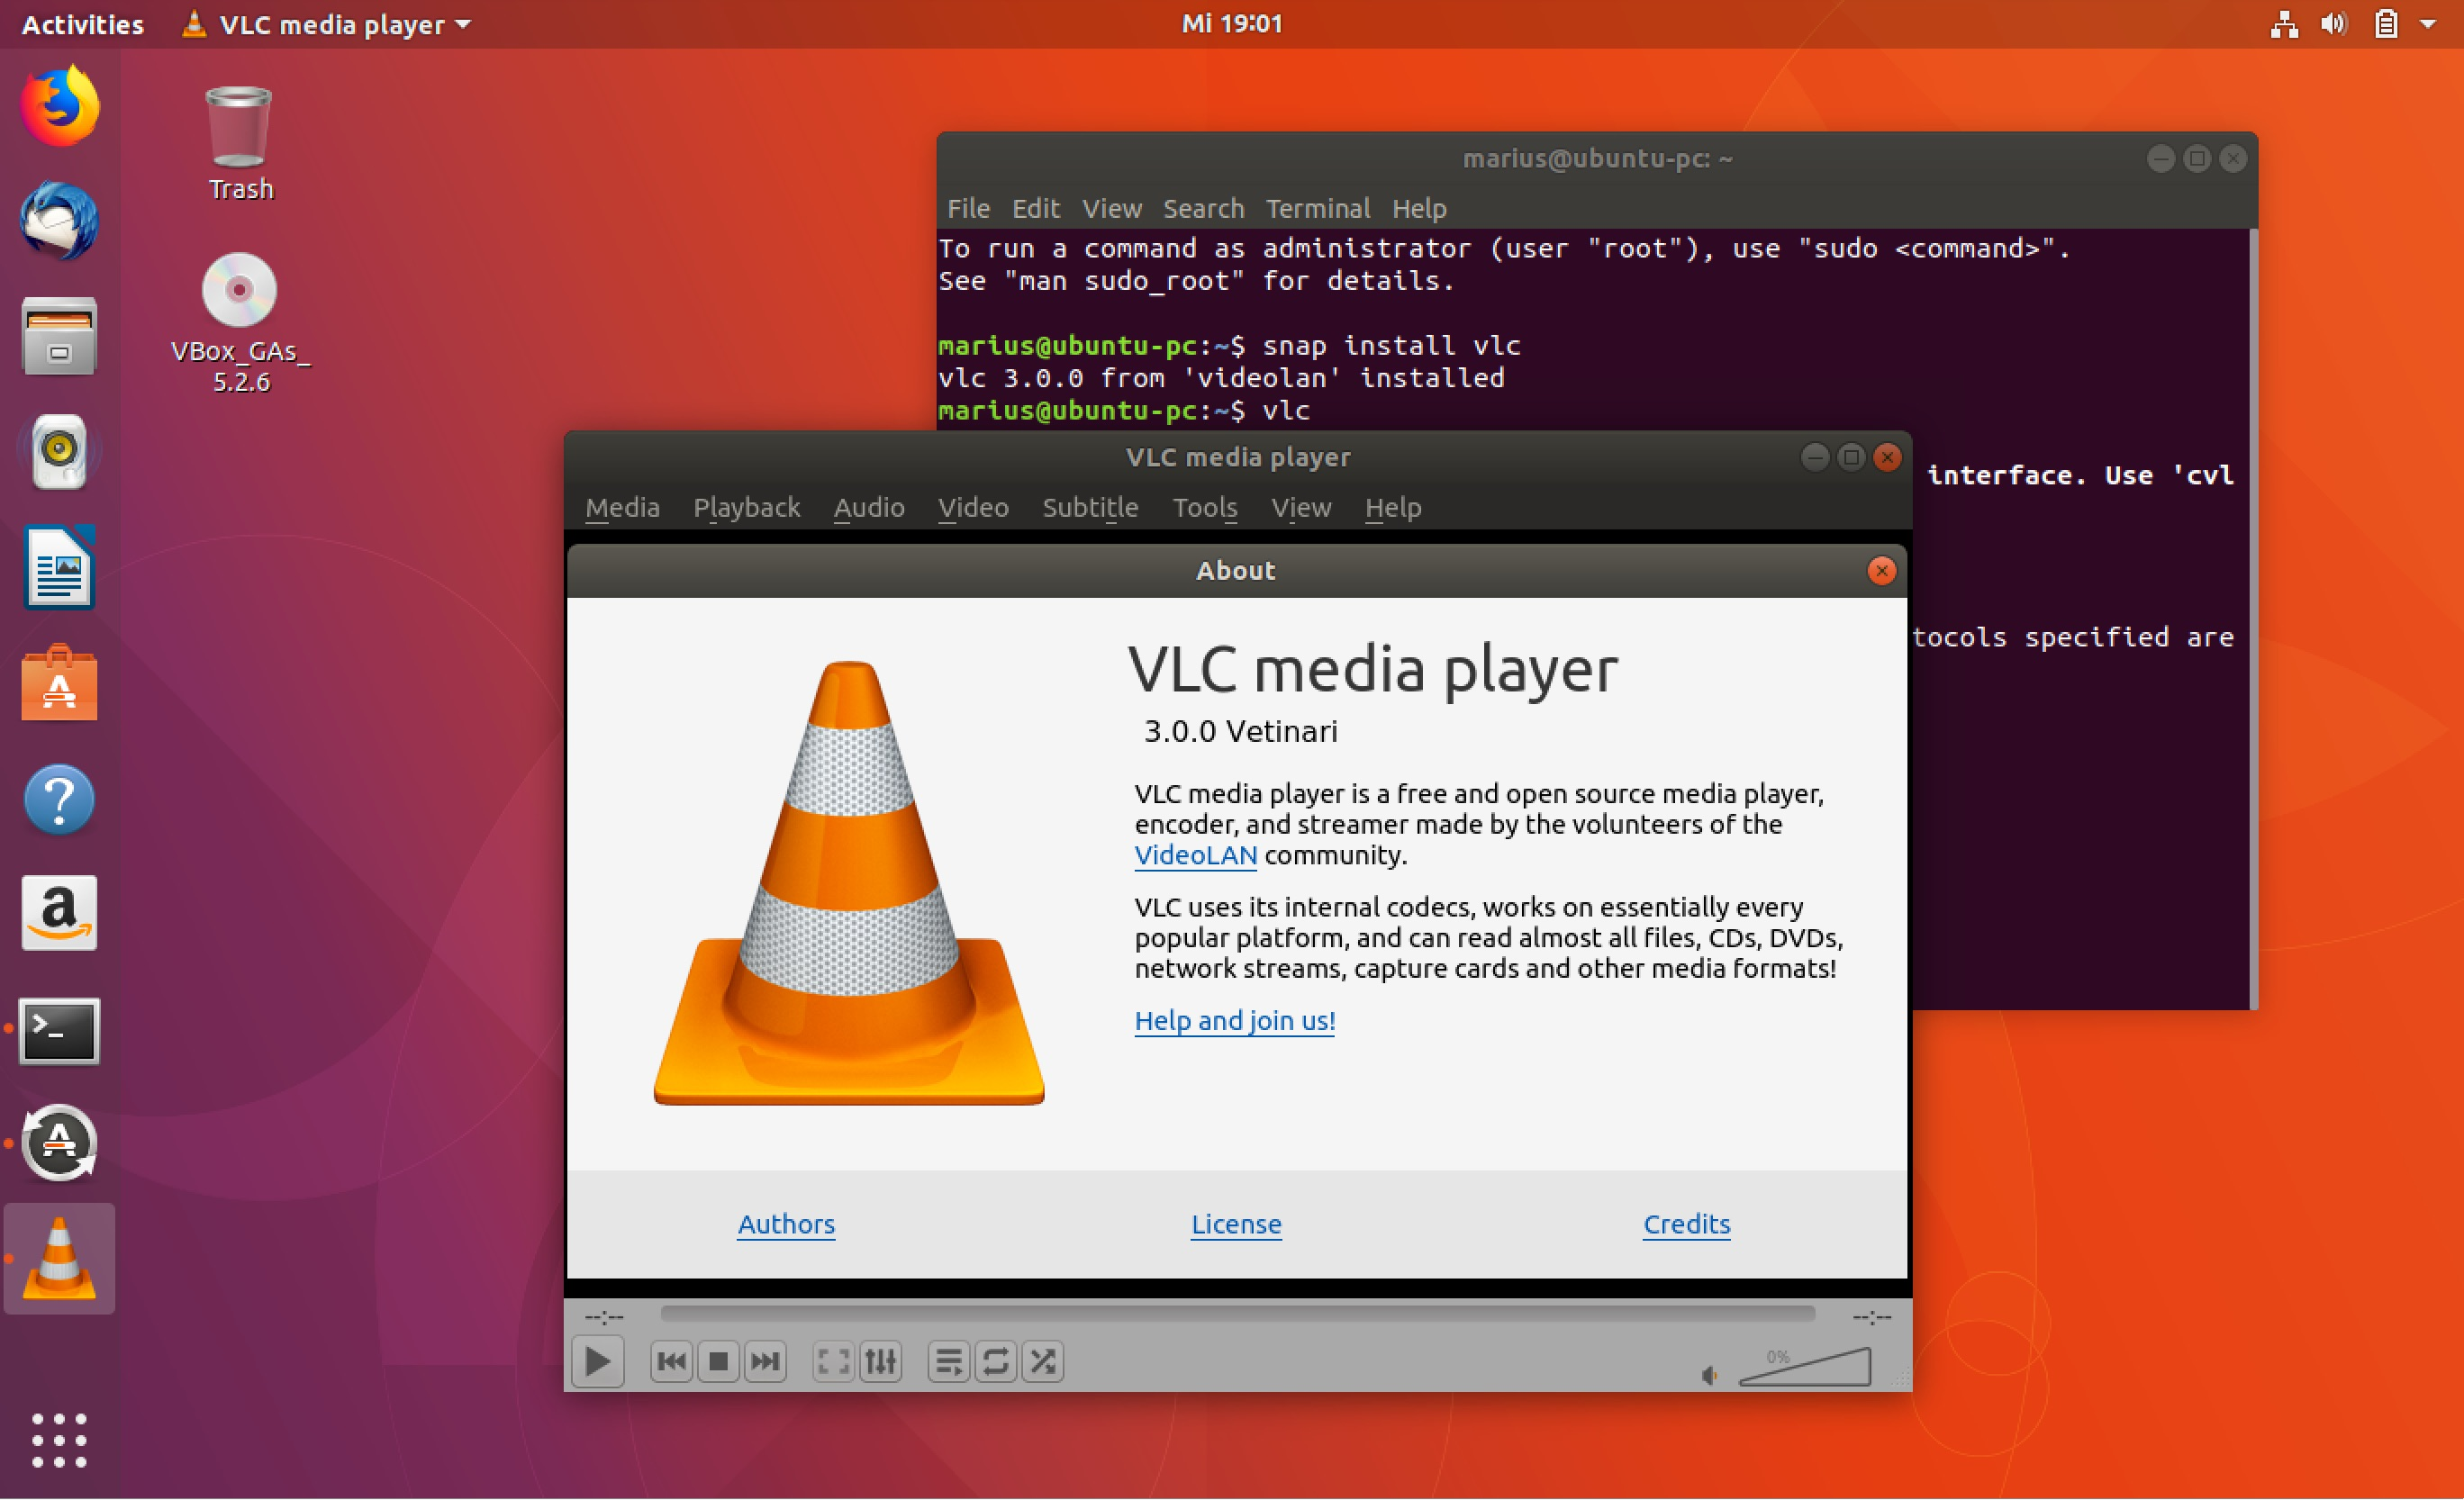 How to Install VLC 3 0 on Ubuntu, Linux Mint, and Other Snap